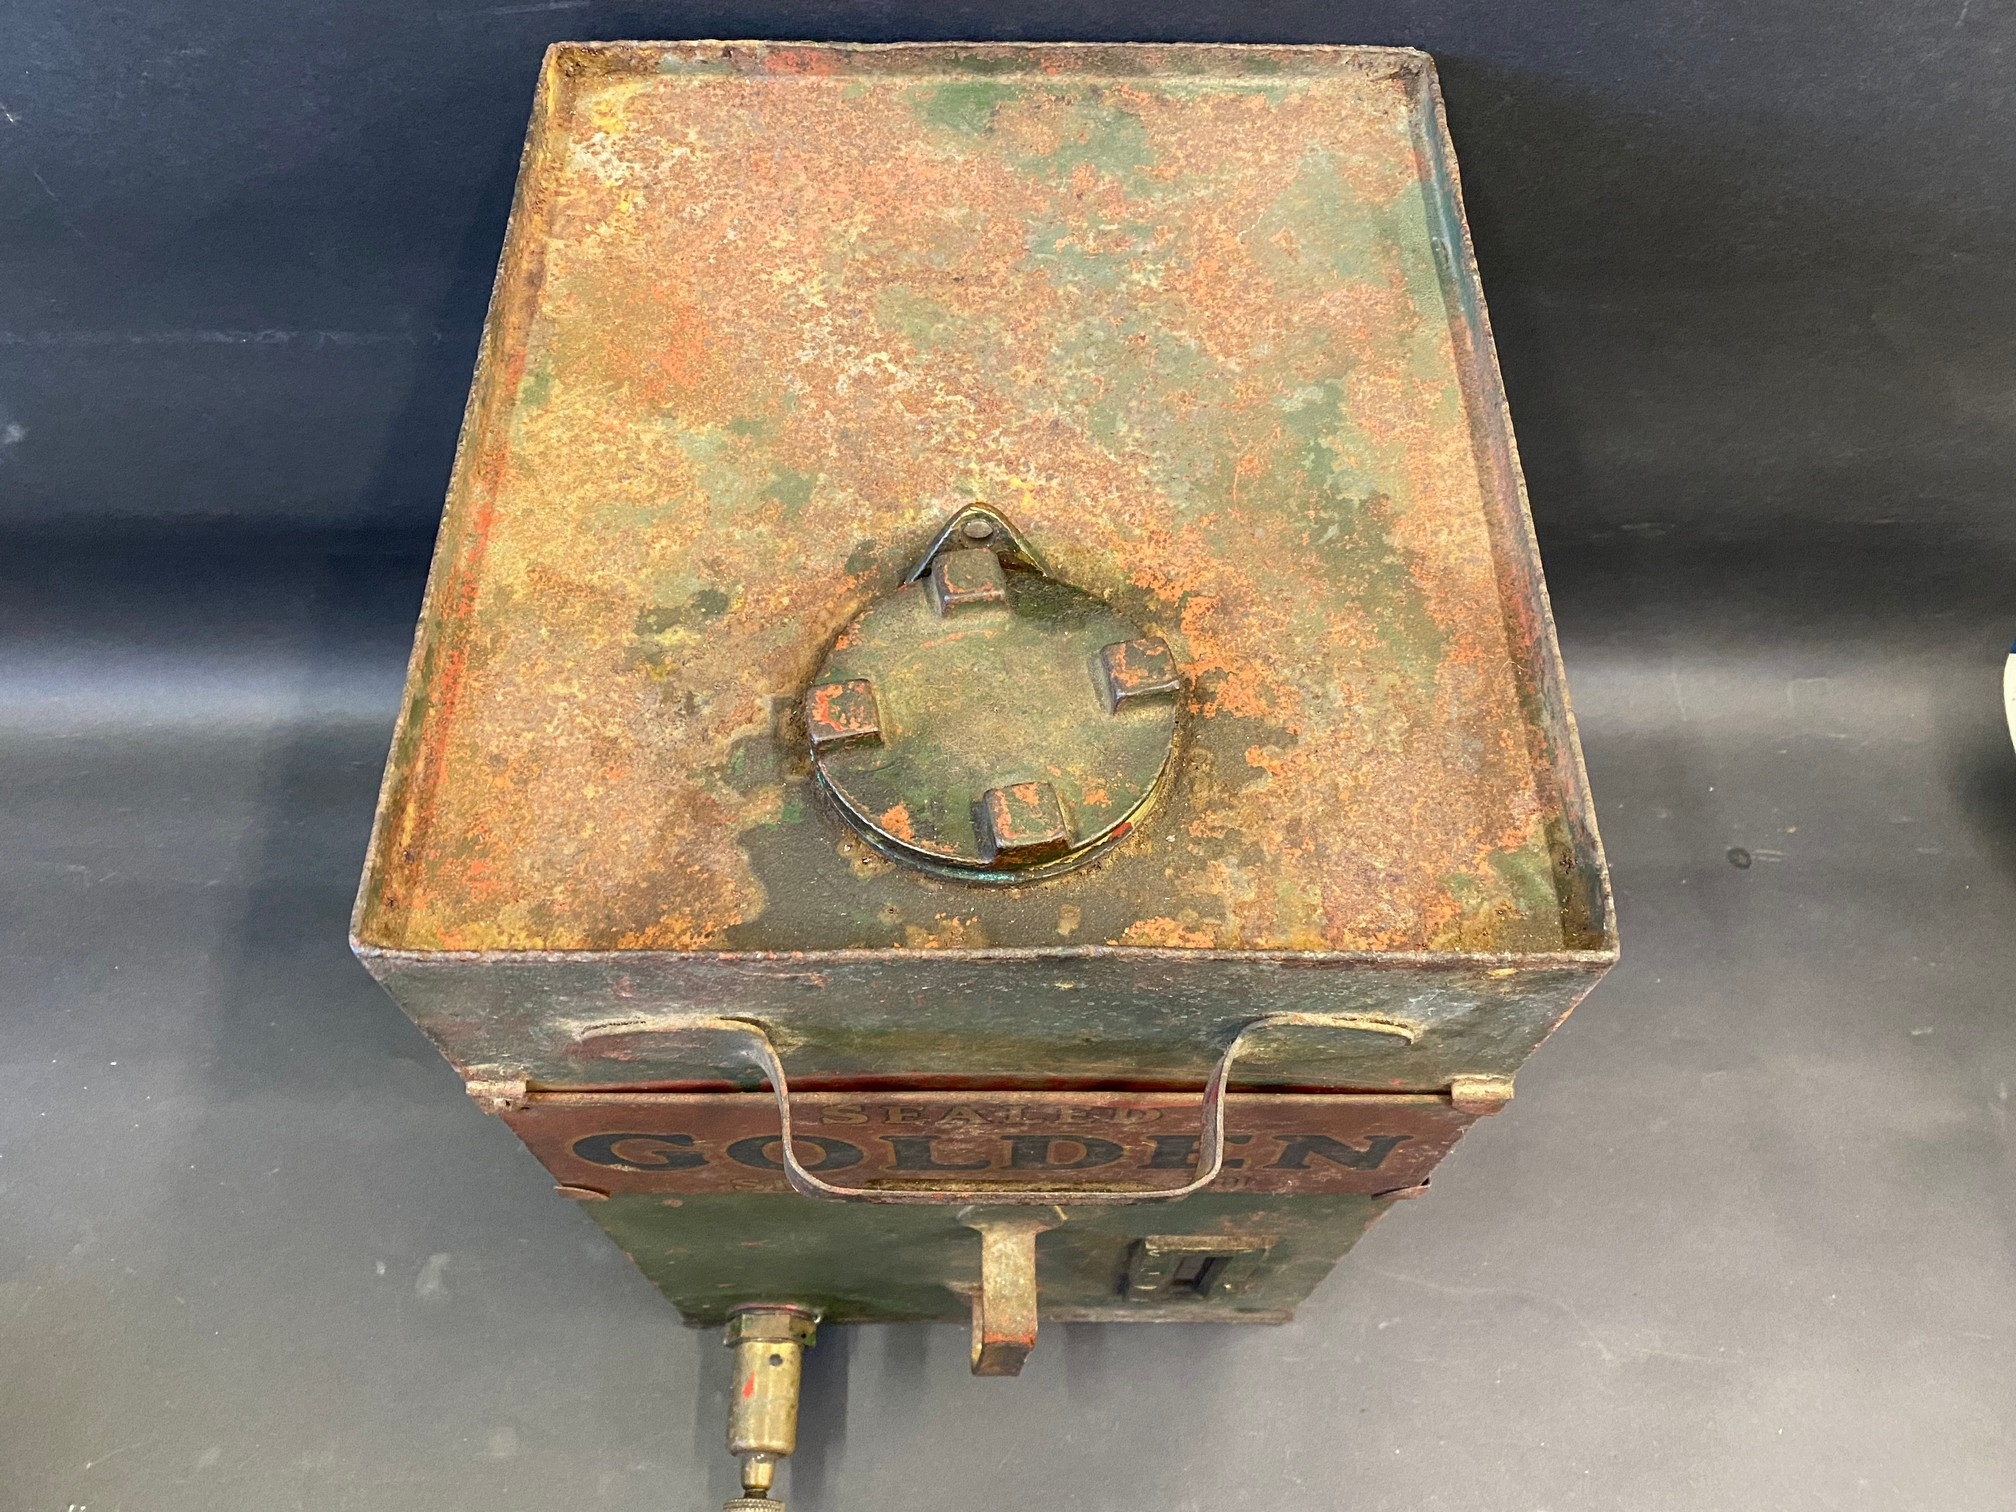 A Sealed Golden Shell motor oil cabinet tank. - Image 2 of 3